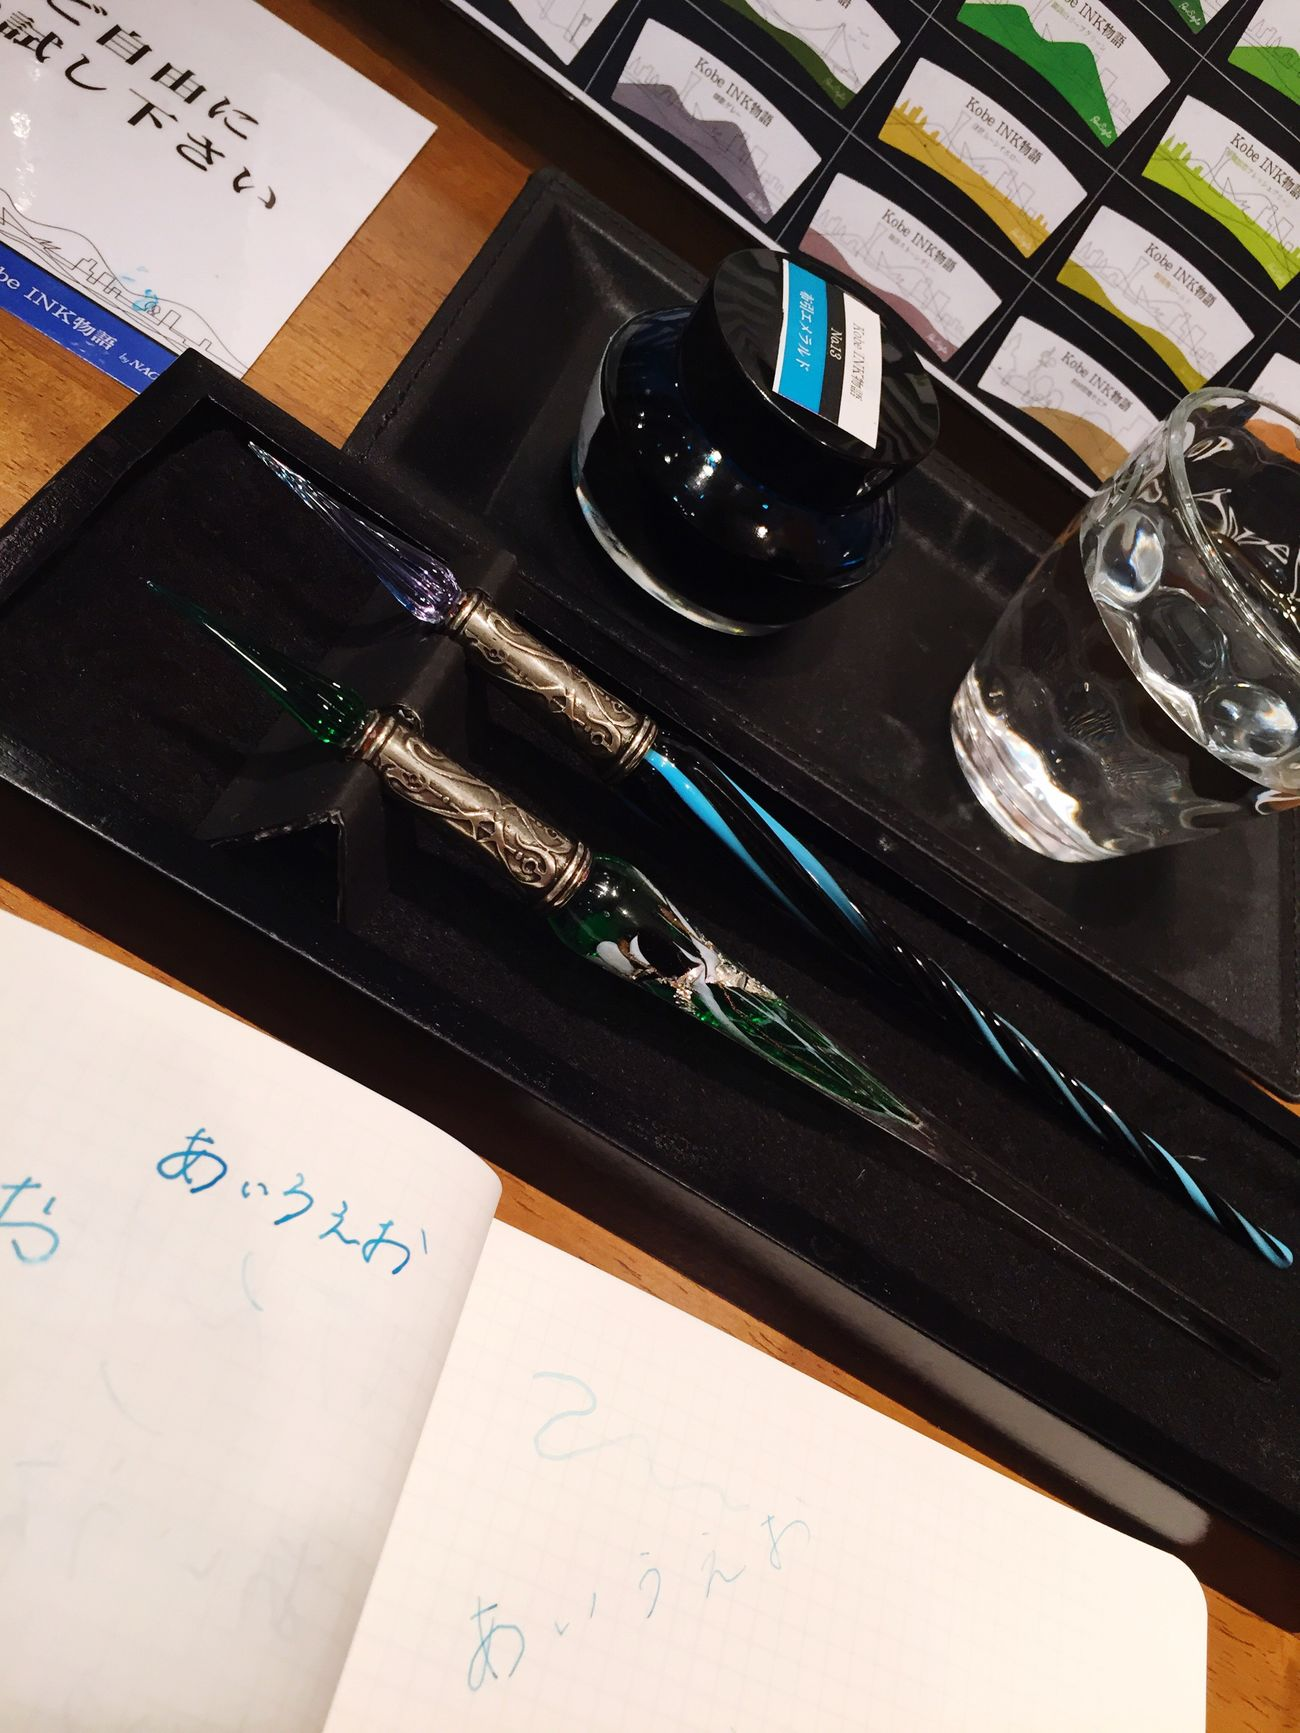 Beautiful 万年筆 Pen Fountain ForTheFirstTime Writing Smooth Touch Happy Happyday Kobe